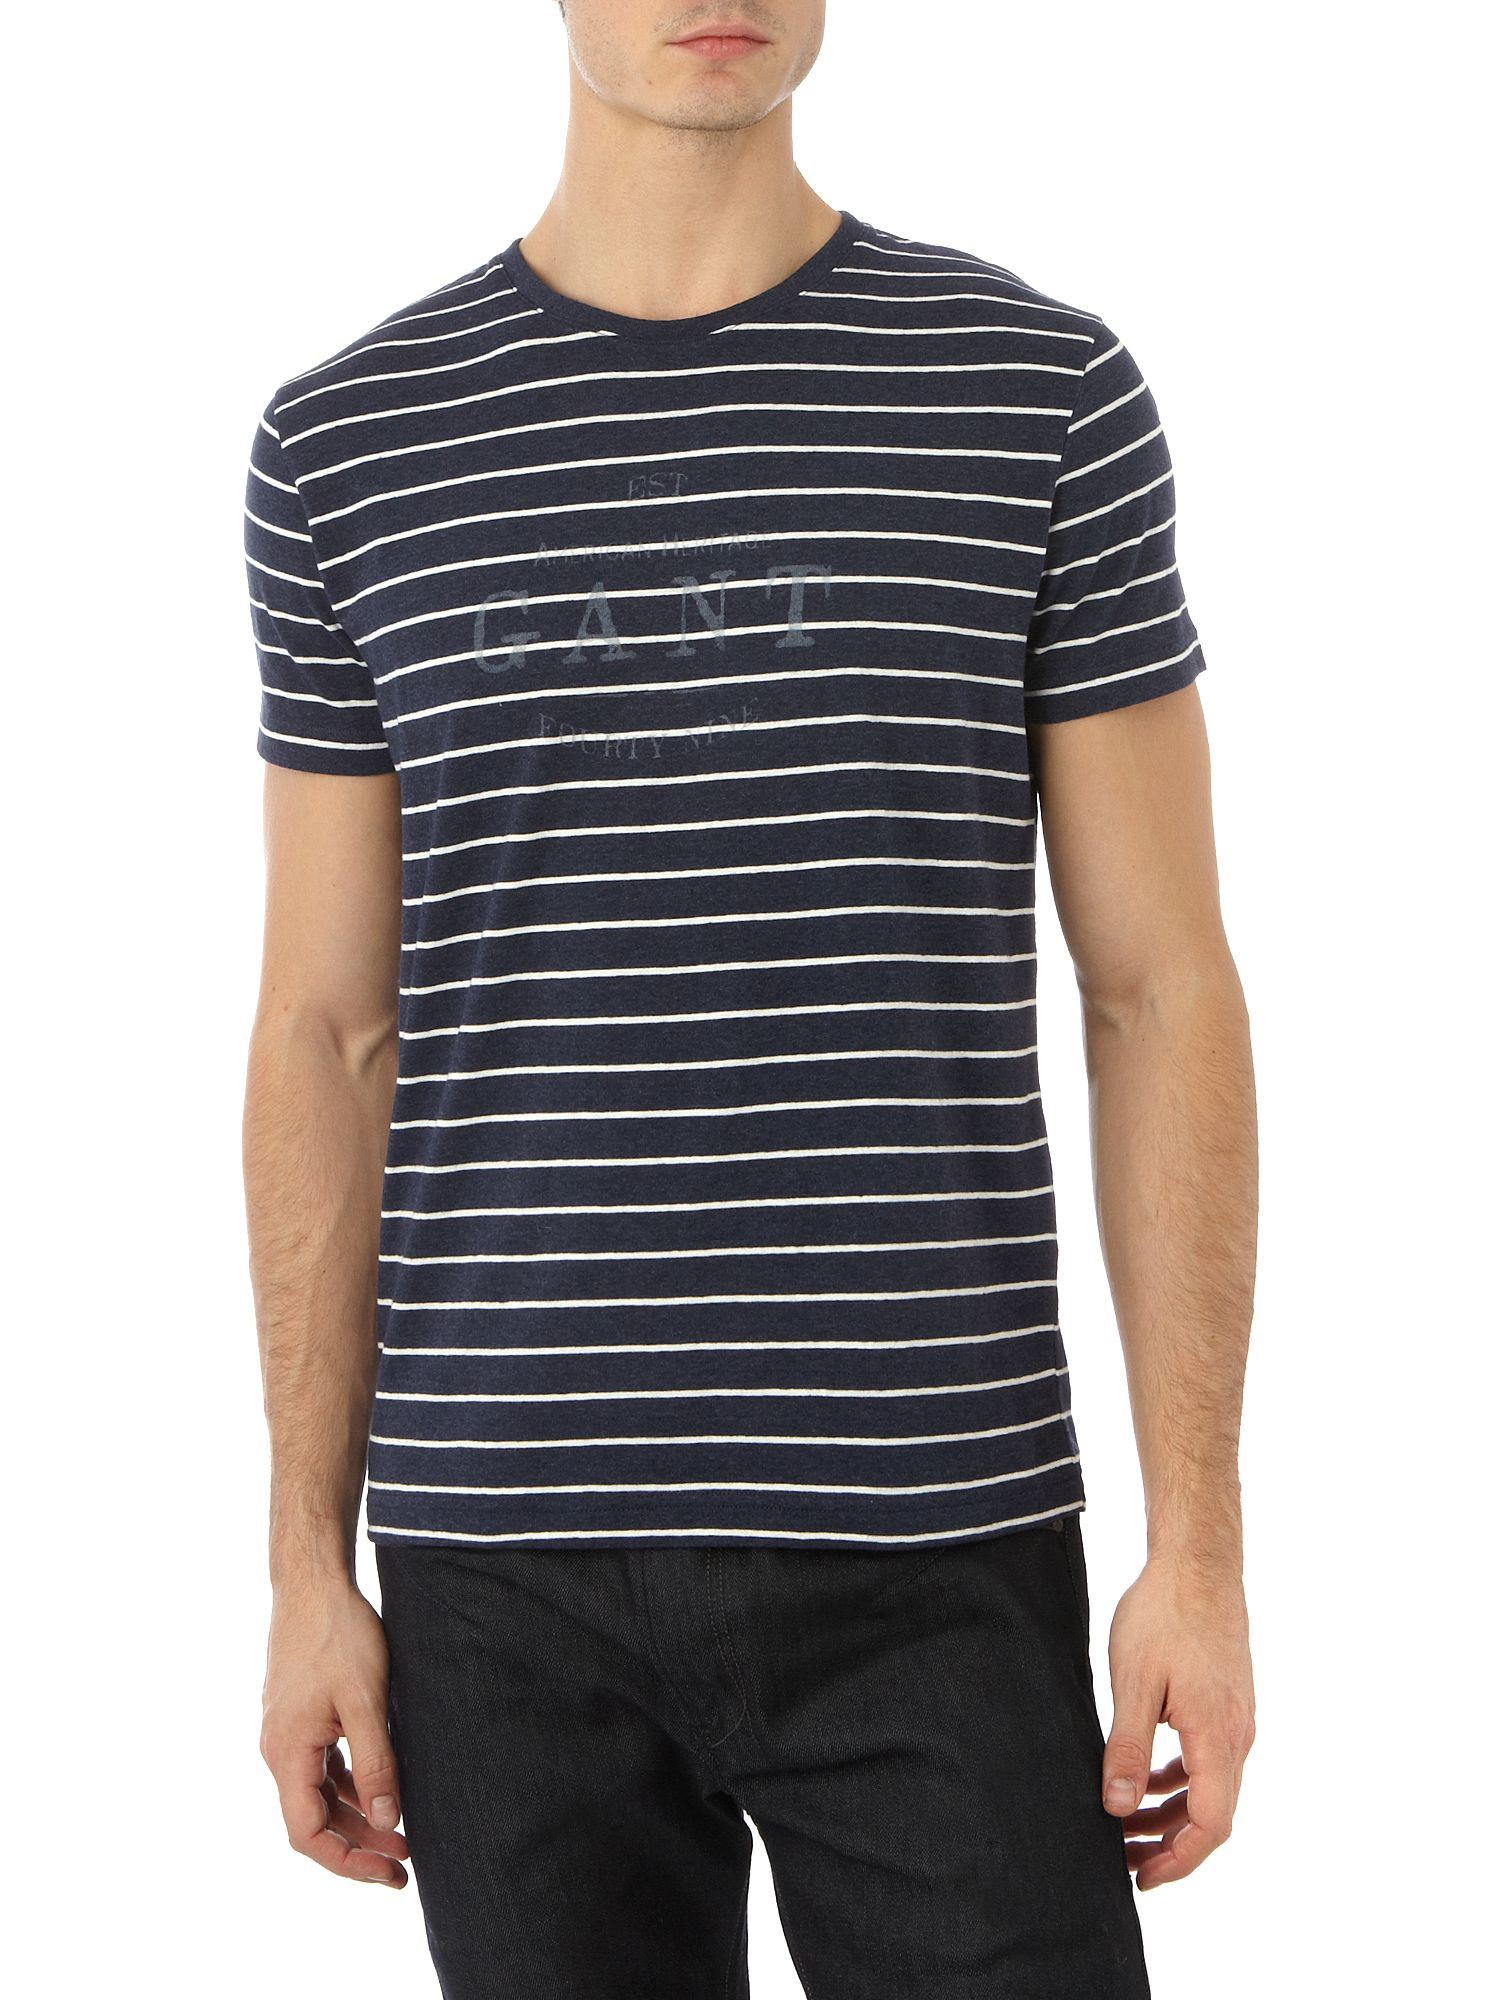 Gant Short-sleeved T-shirt Indigo product image